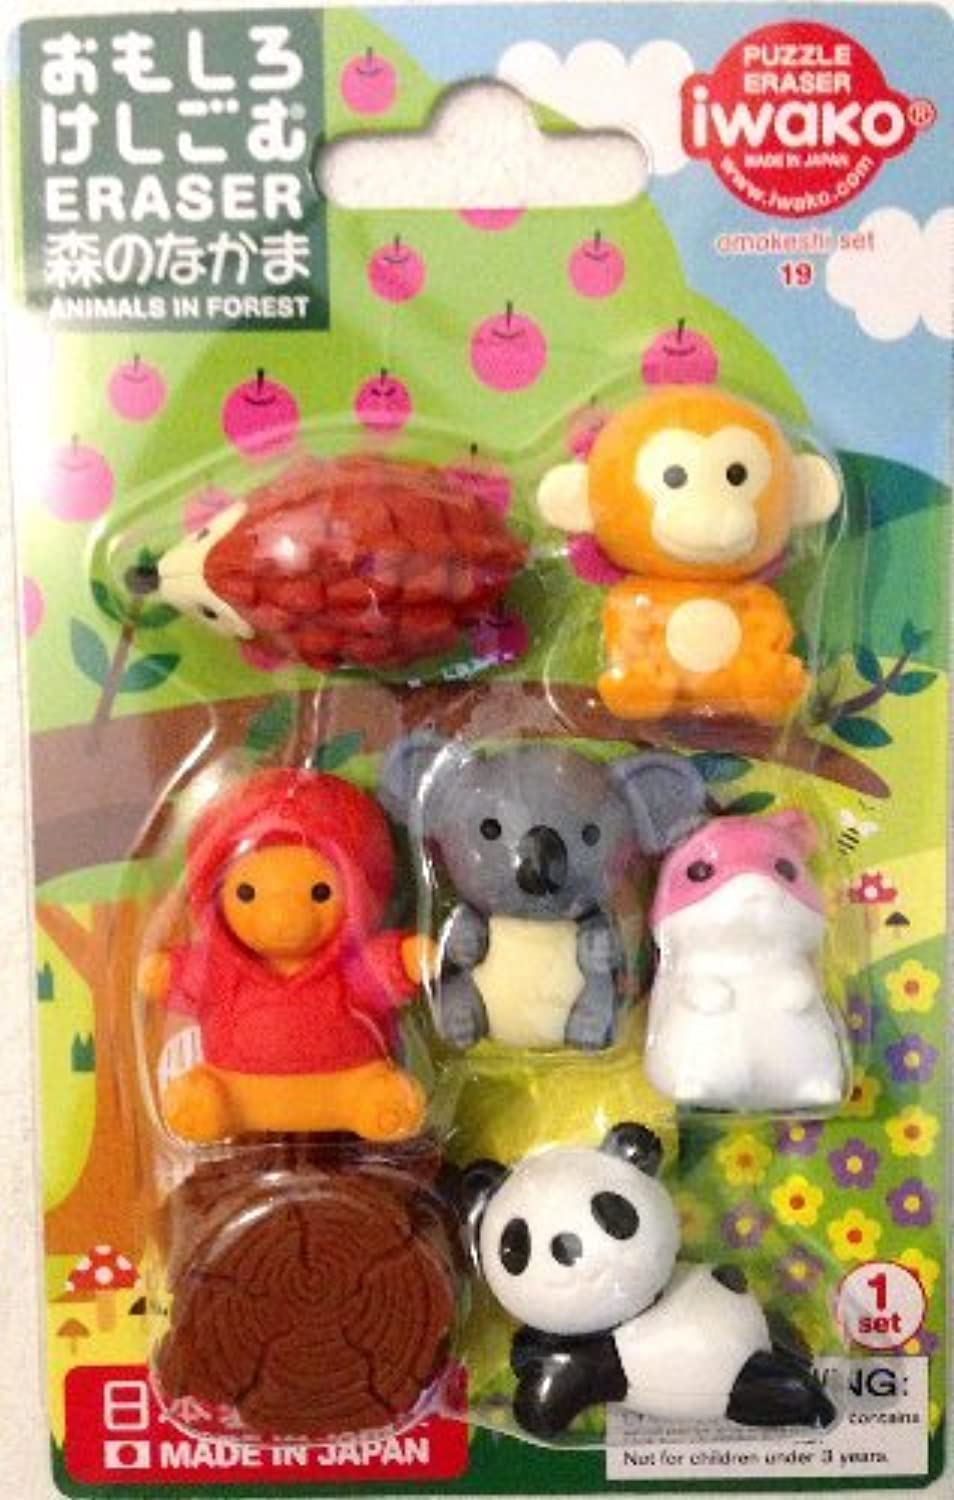 Novelty Japanese Puzzle Eraser Rubber Set - IWAKO Forest Animal Blister Pack - Contains 7 Erasers by Iwako